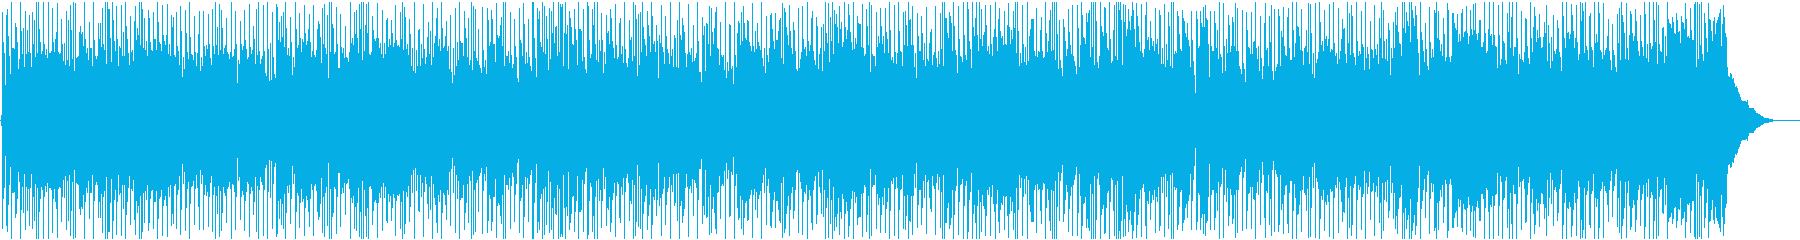 Country active with a cool sense of speed's reproduced waveform